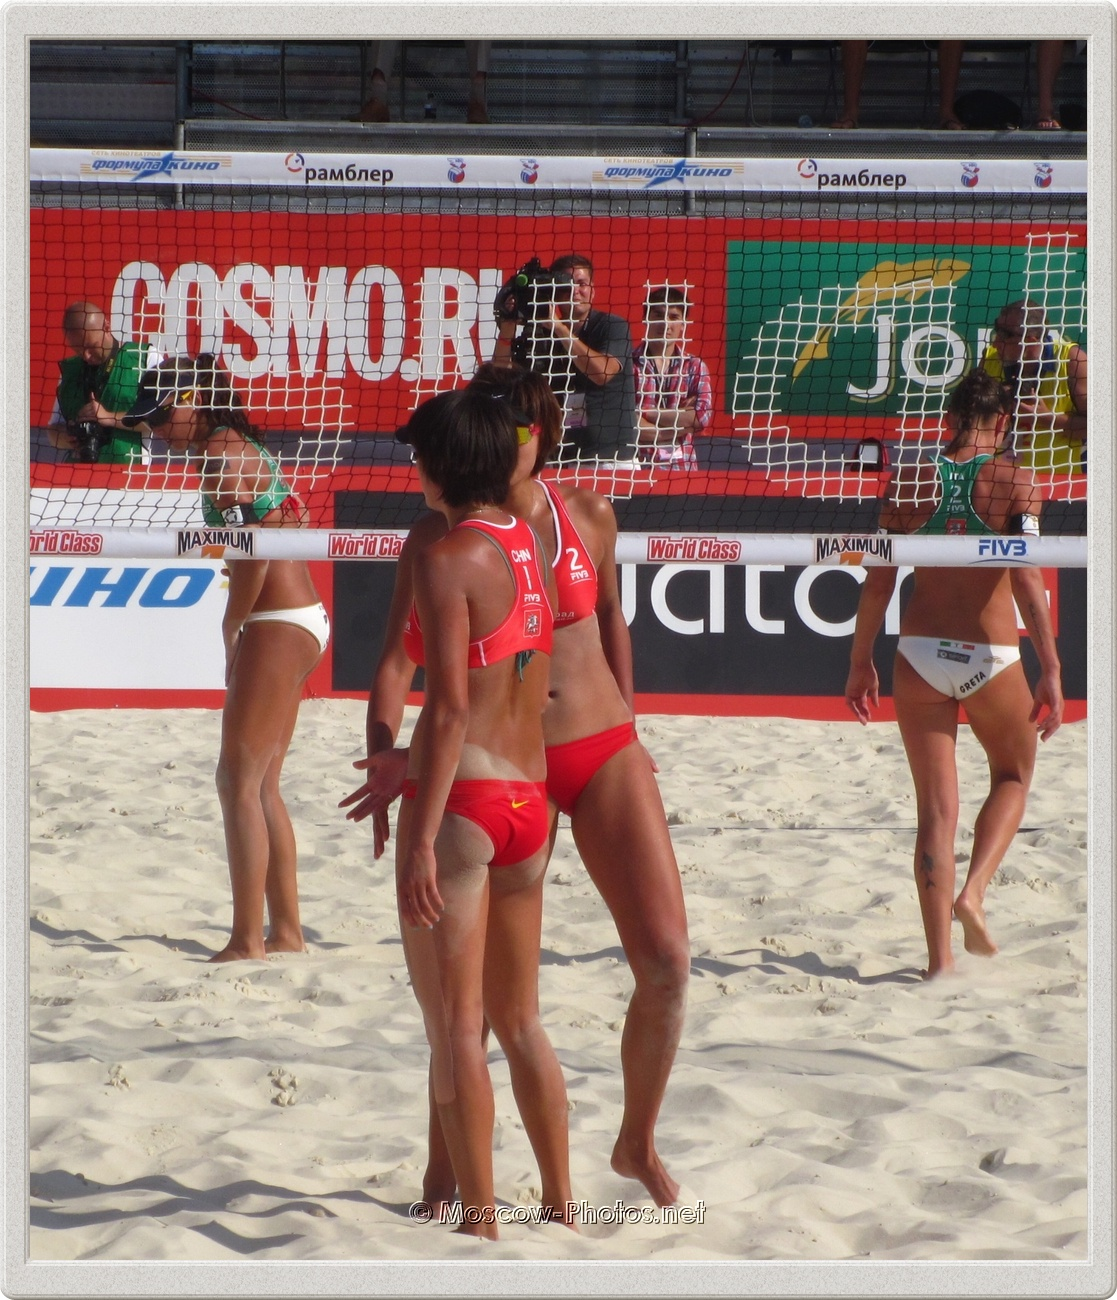 Chinese Women's Beach Volleyball Team